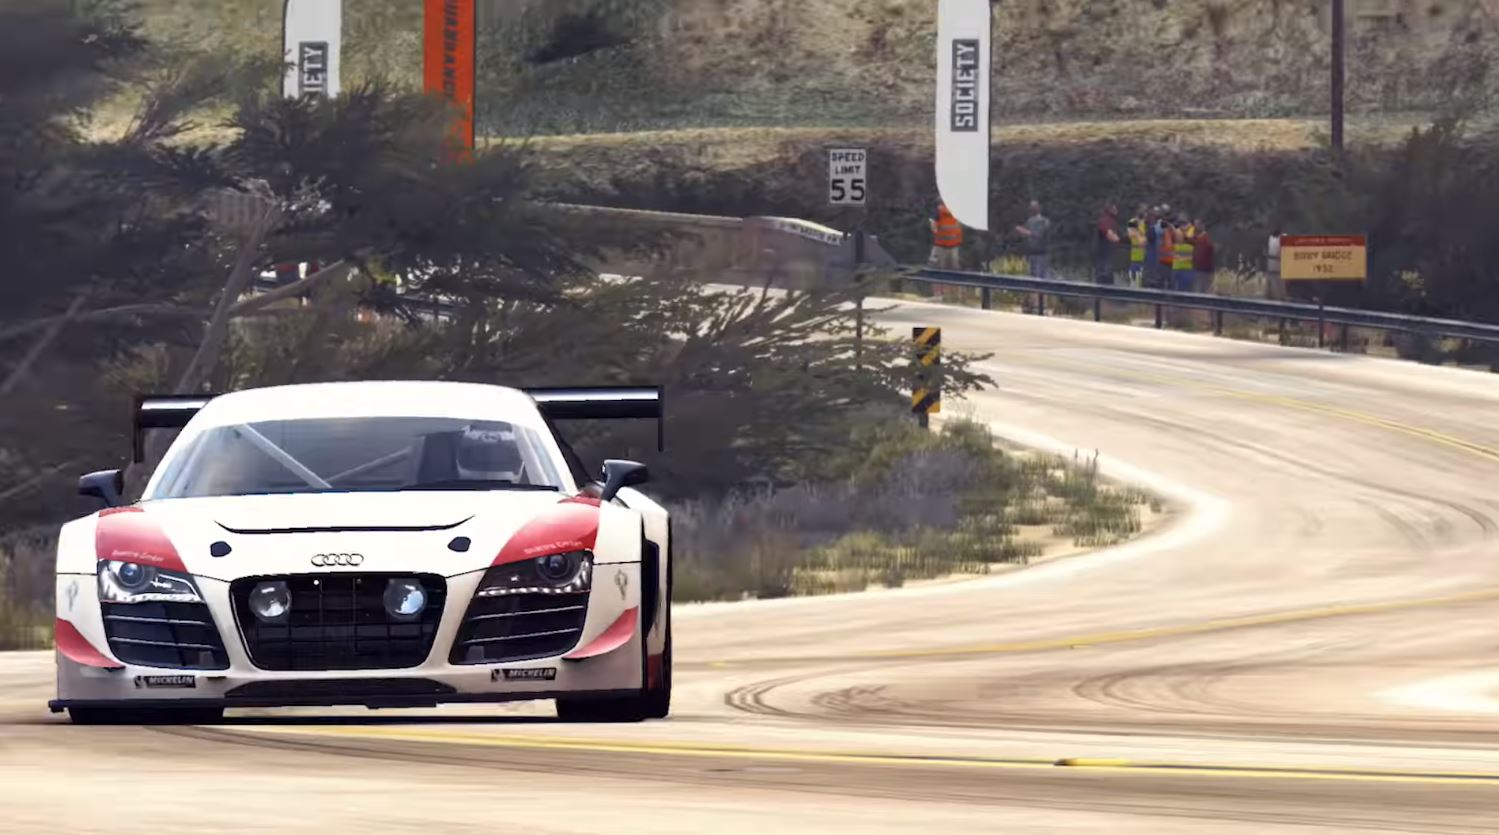 GRID Autosport Arrives On iOS With Free IAPs, Promises